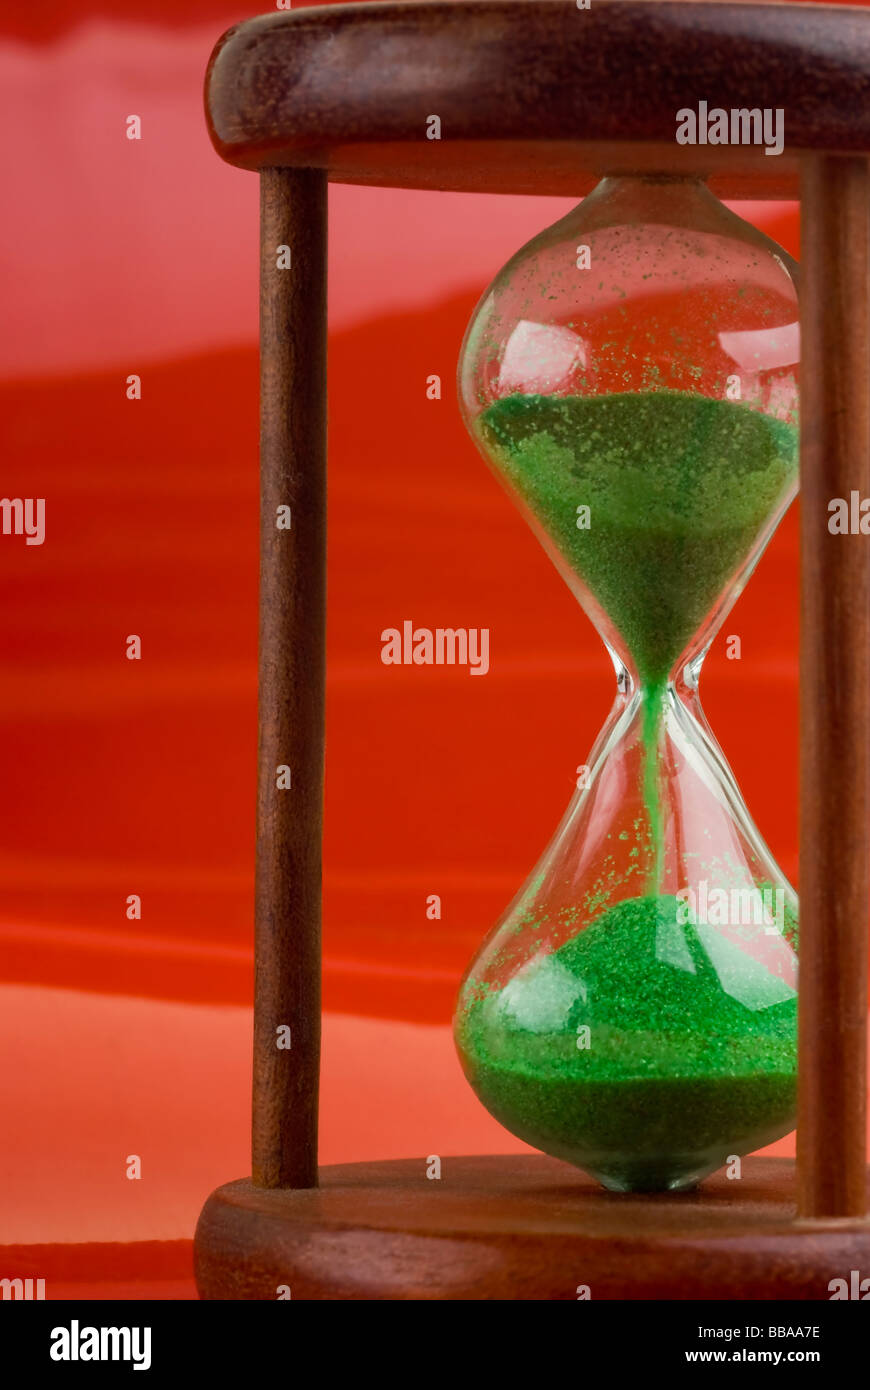 Close-up of an hourglass over a red background. - Stock Image